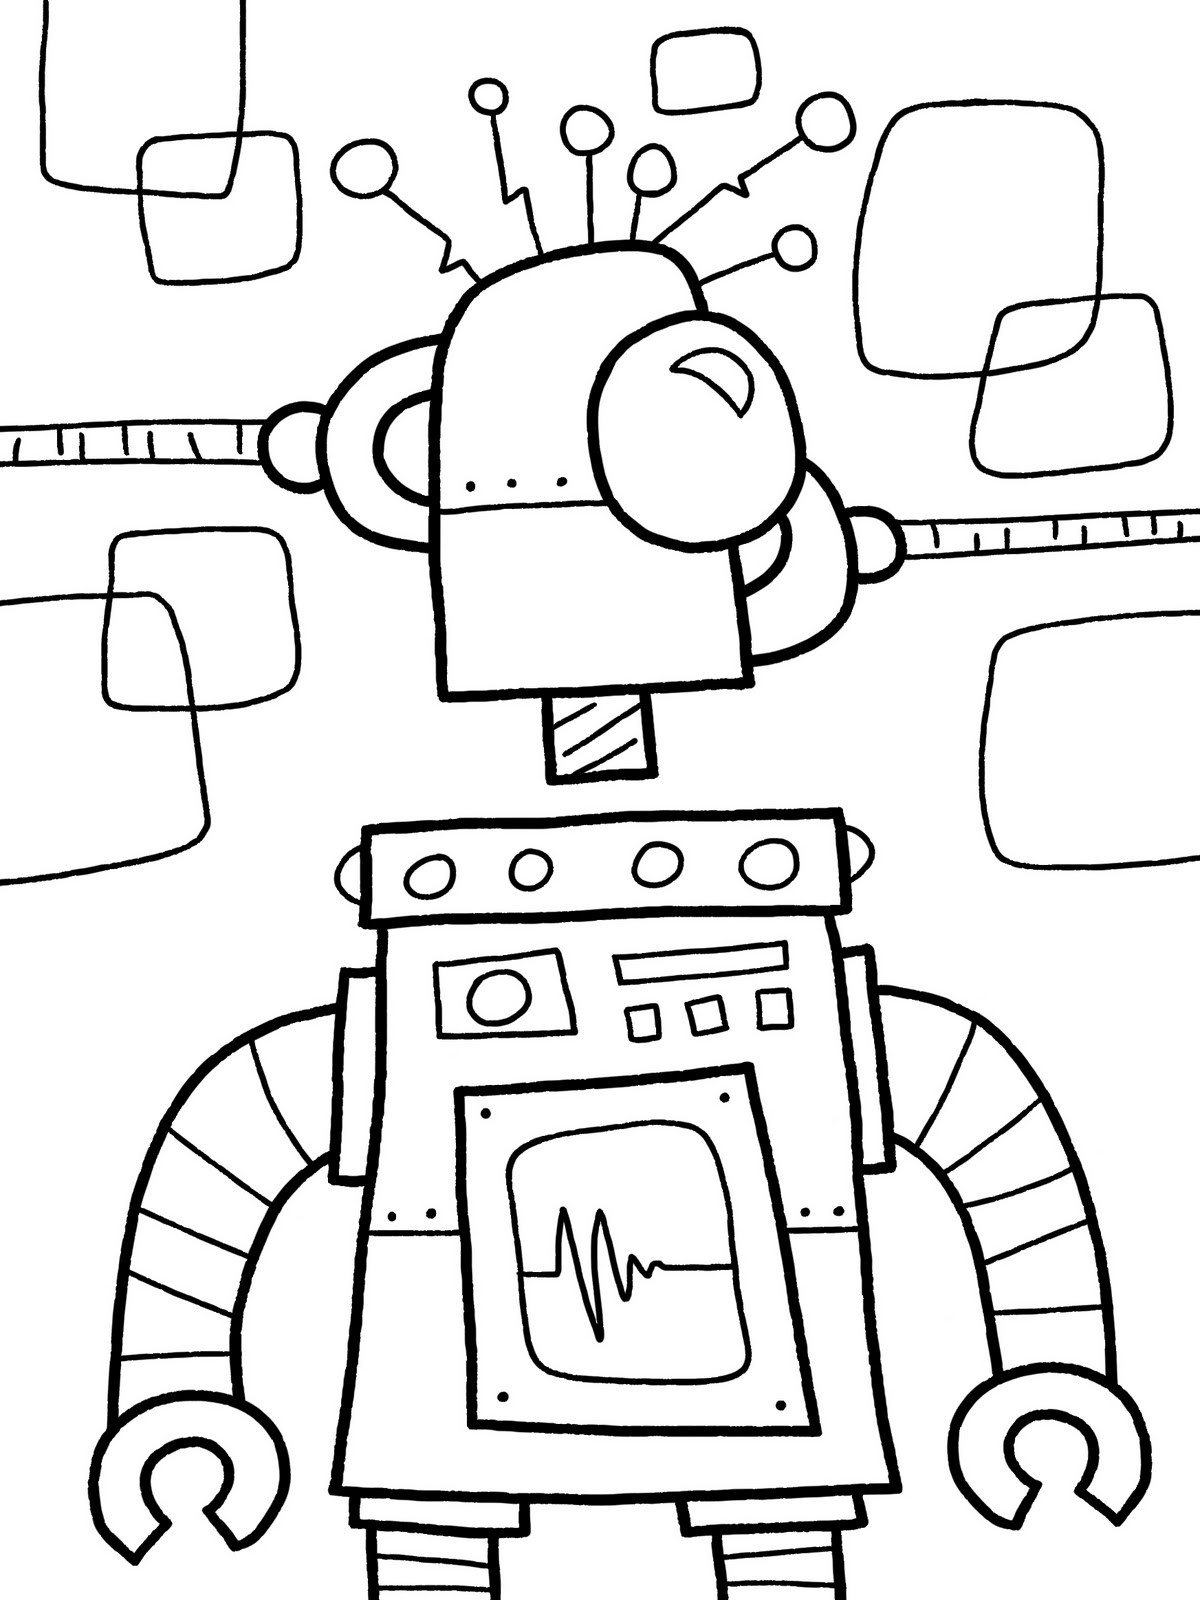 1200x1600 Robots Coloring Pages For Kids Luxury Free Printable Robot